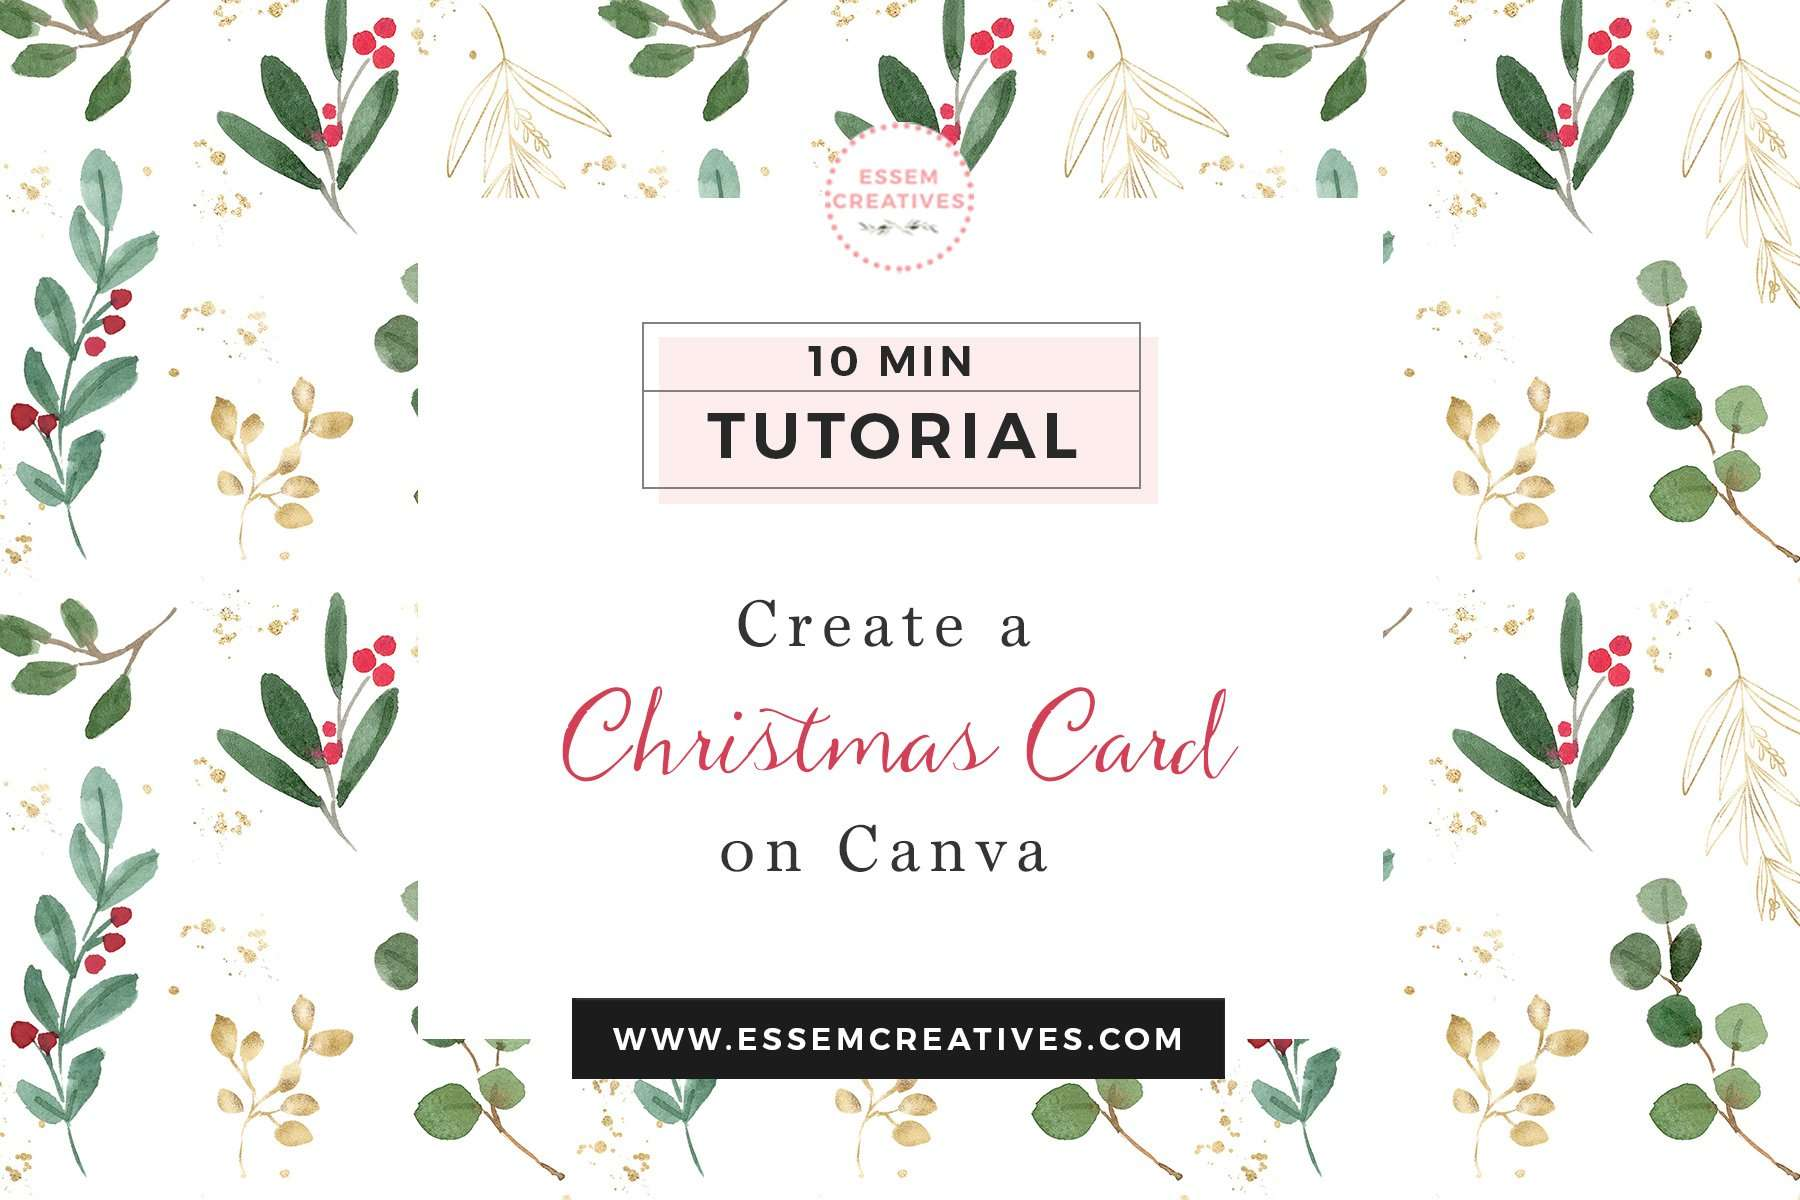 Create A Christmas Card With Photo Online For Free Essem Creatives Watercolor Clipart Business Branding